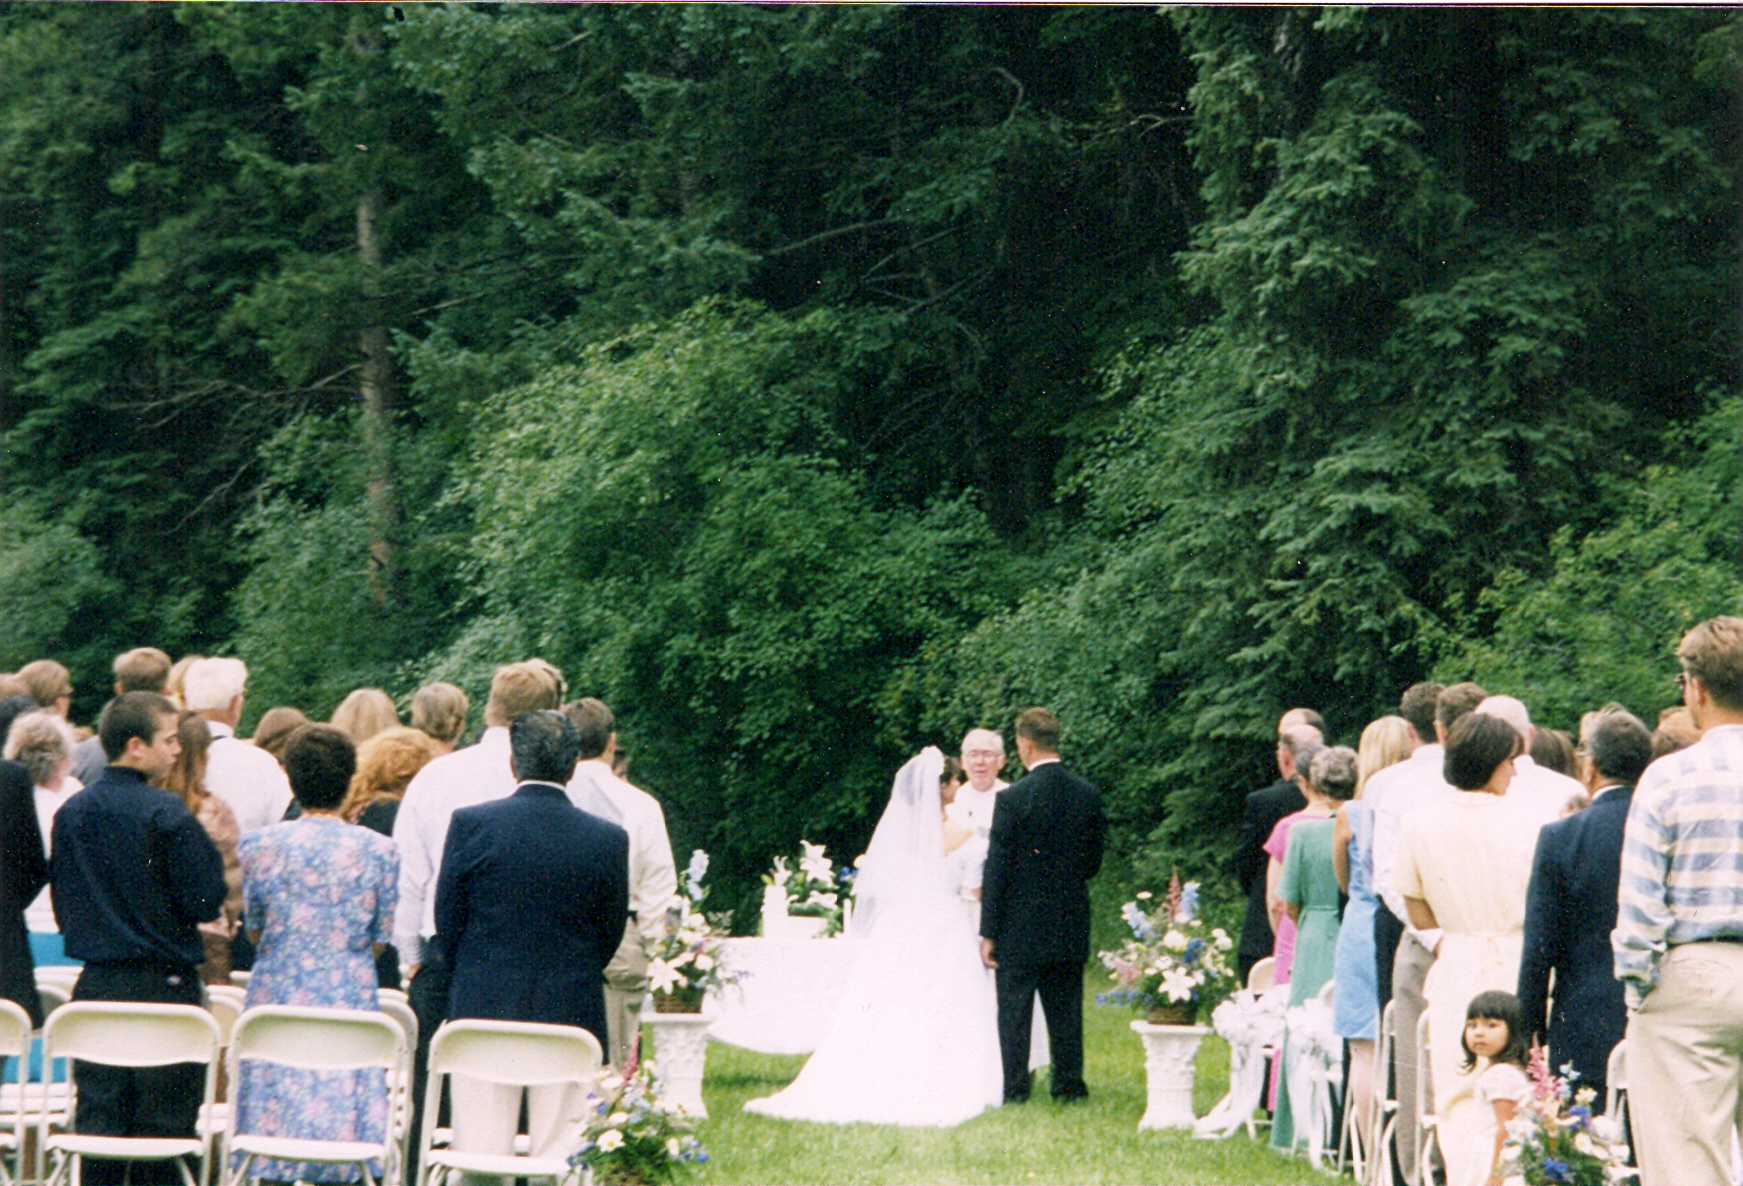 sUMMER WEDDING IN OUR MEADOW